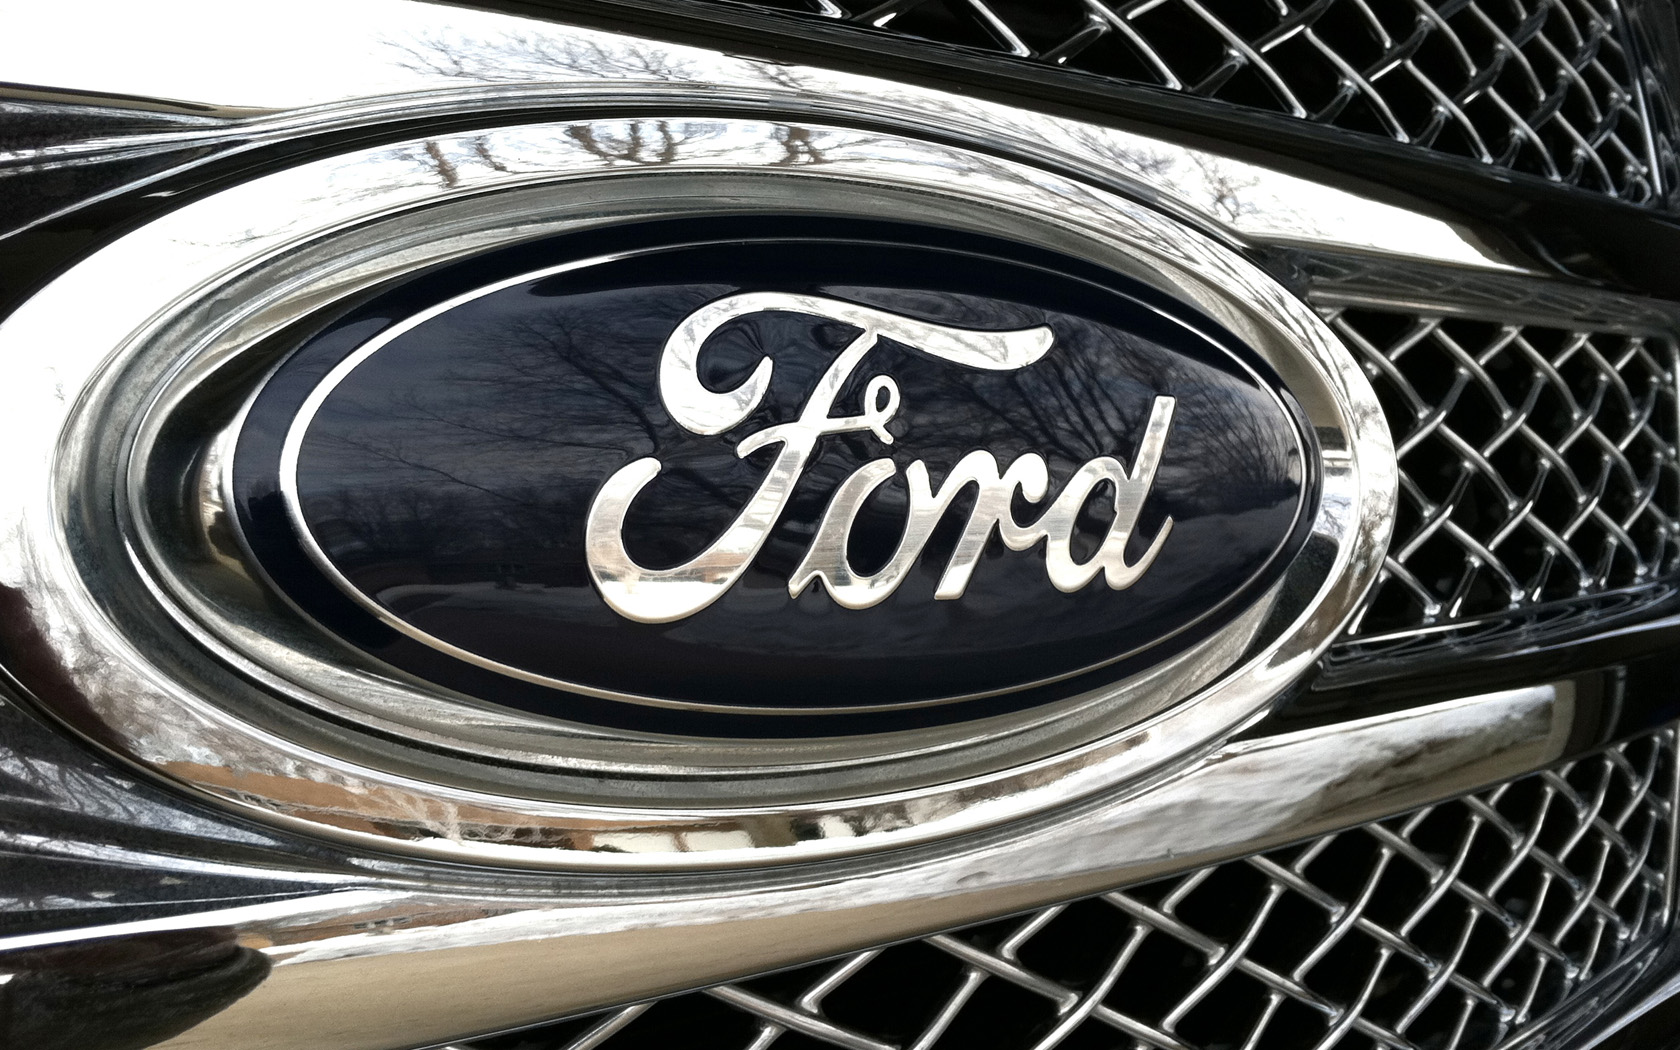 Ford Logo Chrome wallpapers55com   Best Wallpapers for PCs Laptops 1680x1050